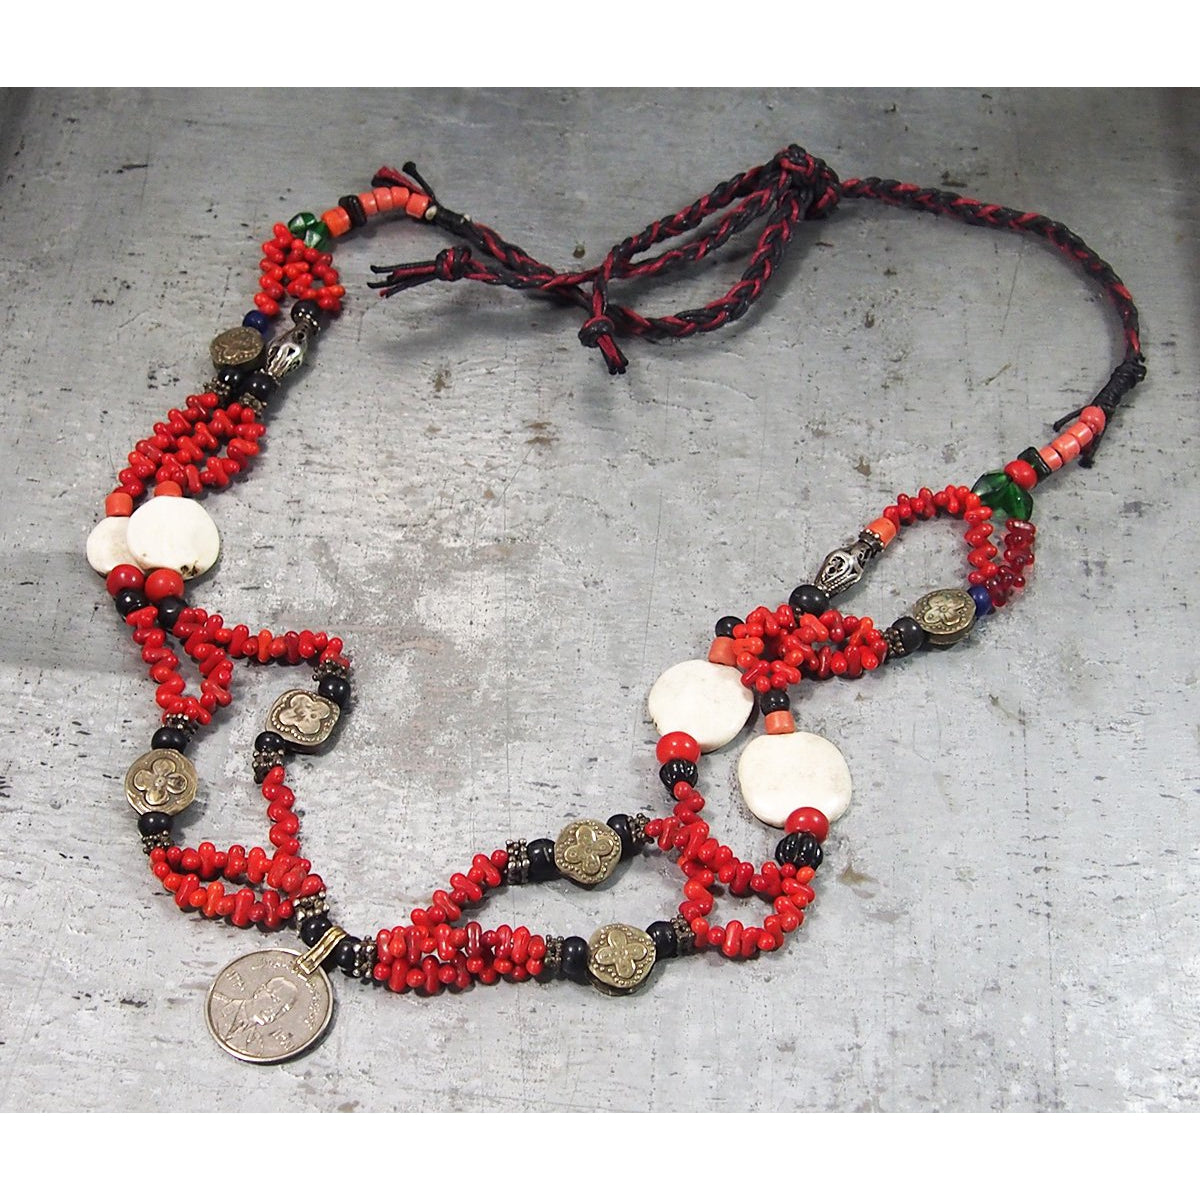 Dating pendant beads afghanistan